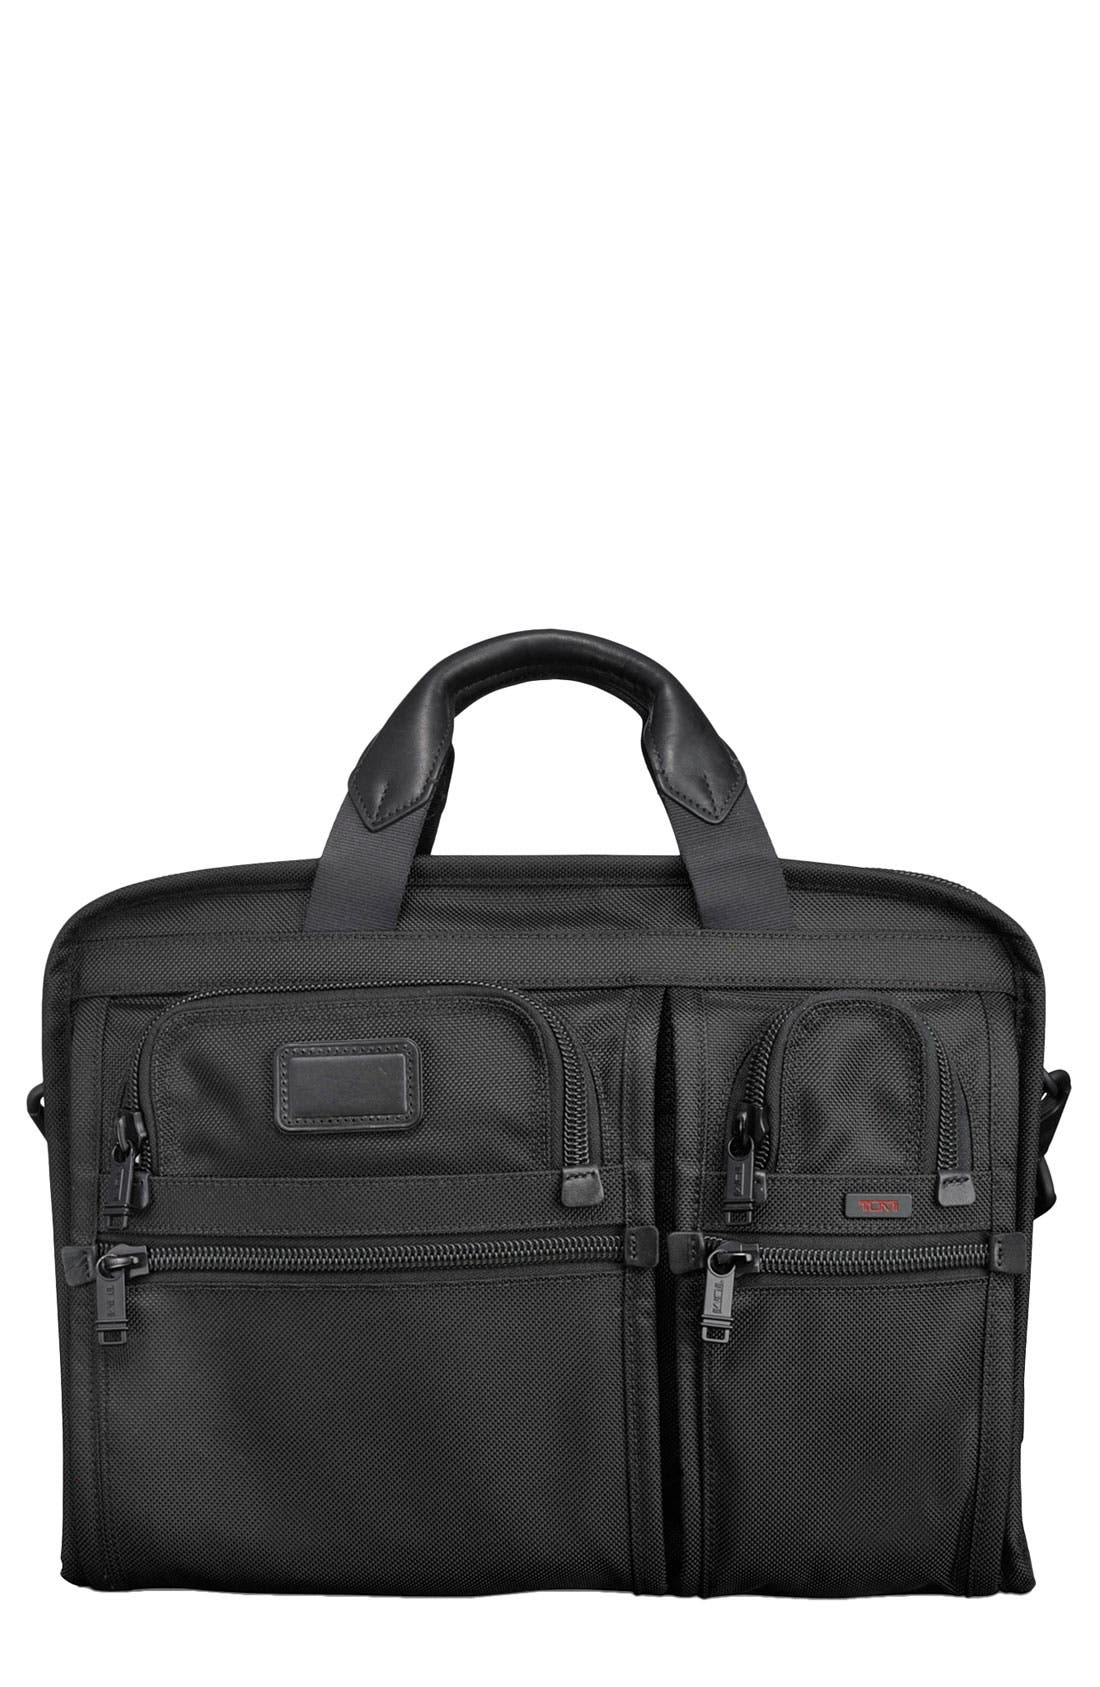 Alternate Image 1 Selected - Tumi 'Alpha' Organizer Portfolio Briefcase